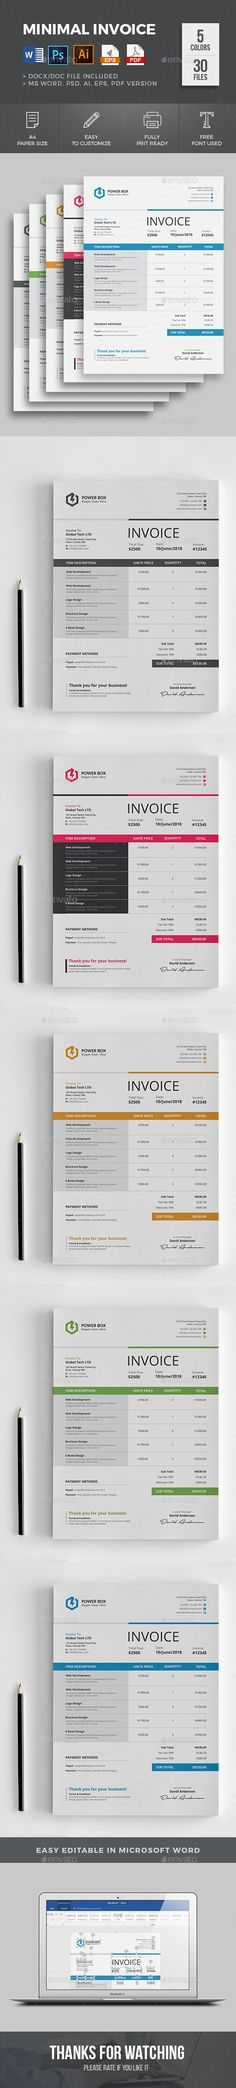 8 best #Invoice \ #Proposal templates images on Pinterest - website invoice